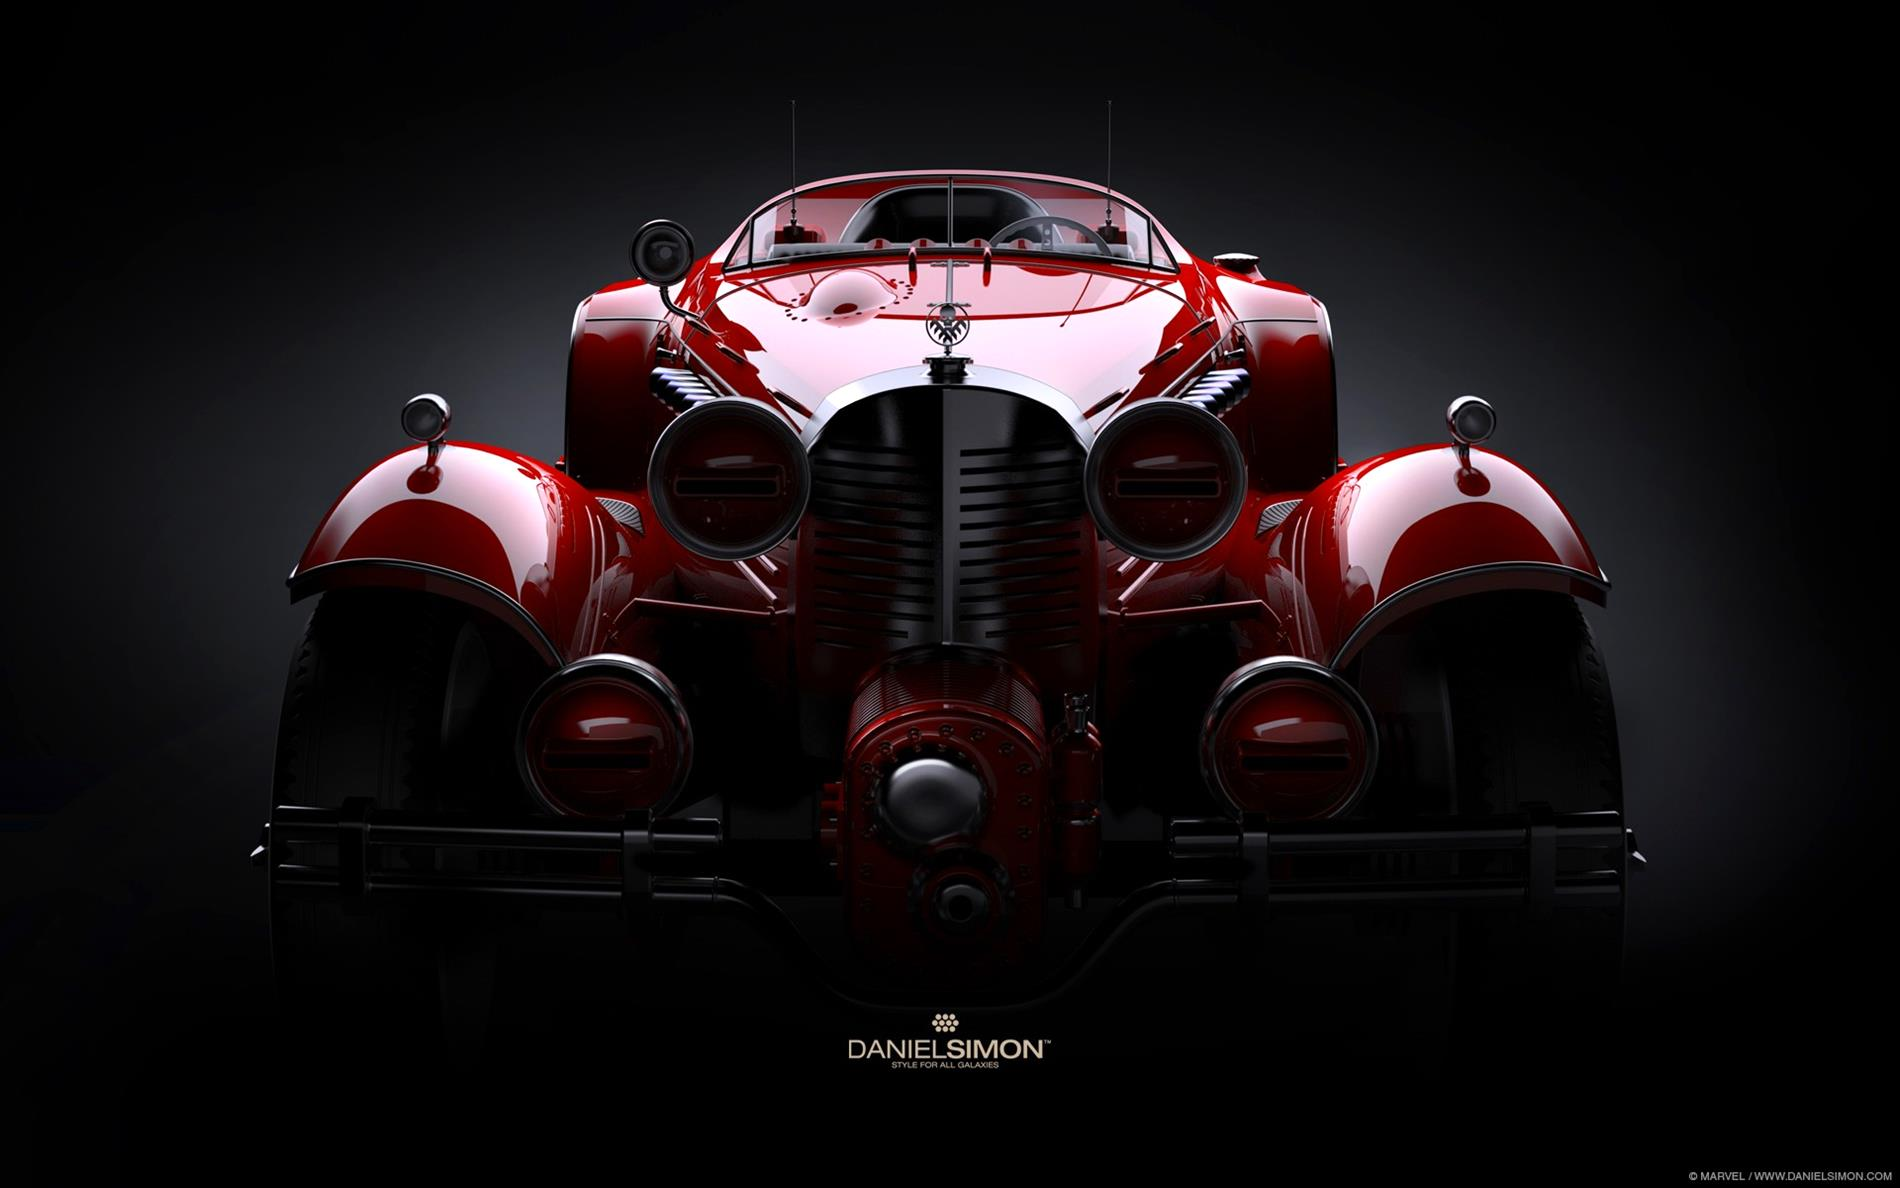 The-Best-Vintage-Car-Wallpapers-28-Best Vintage Car-wv-aston martin-ferarri